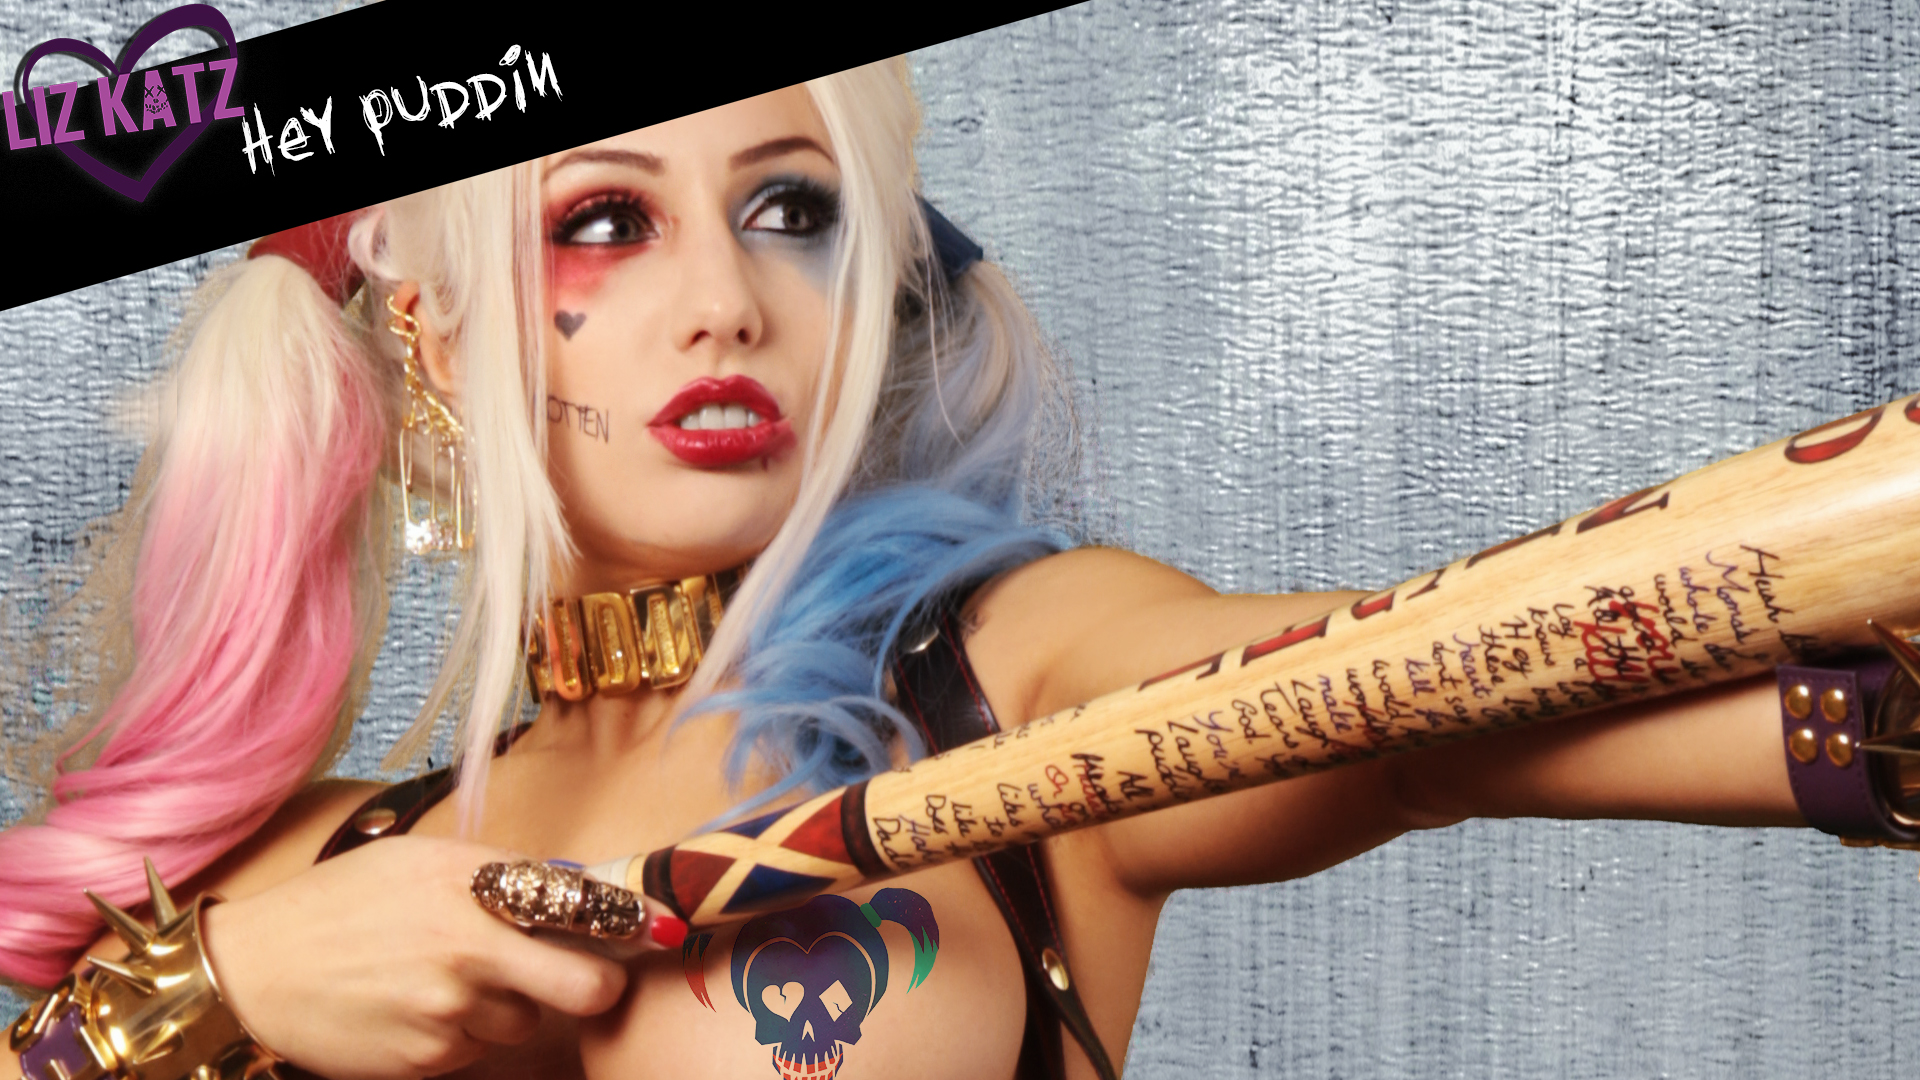 Hey Puddin – Suicide Squad Harley Quinn Cosplay